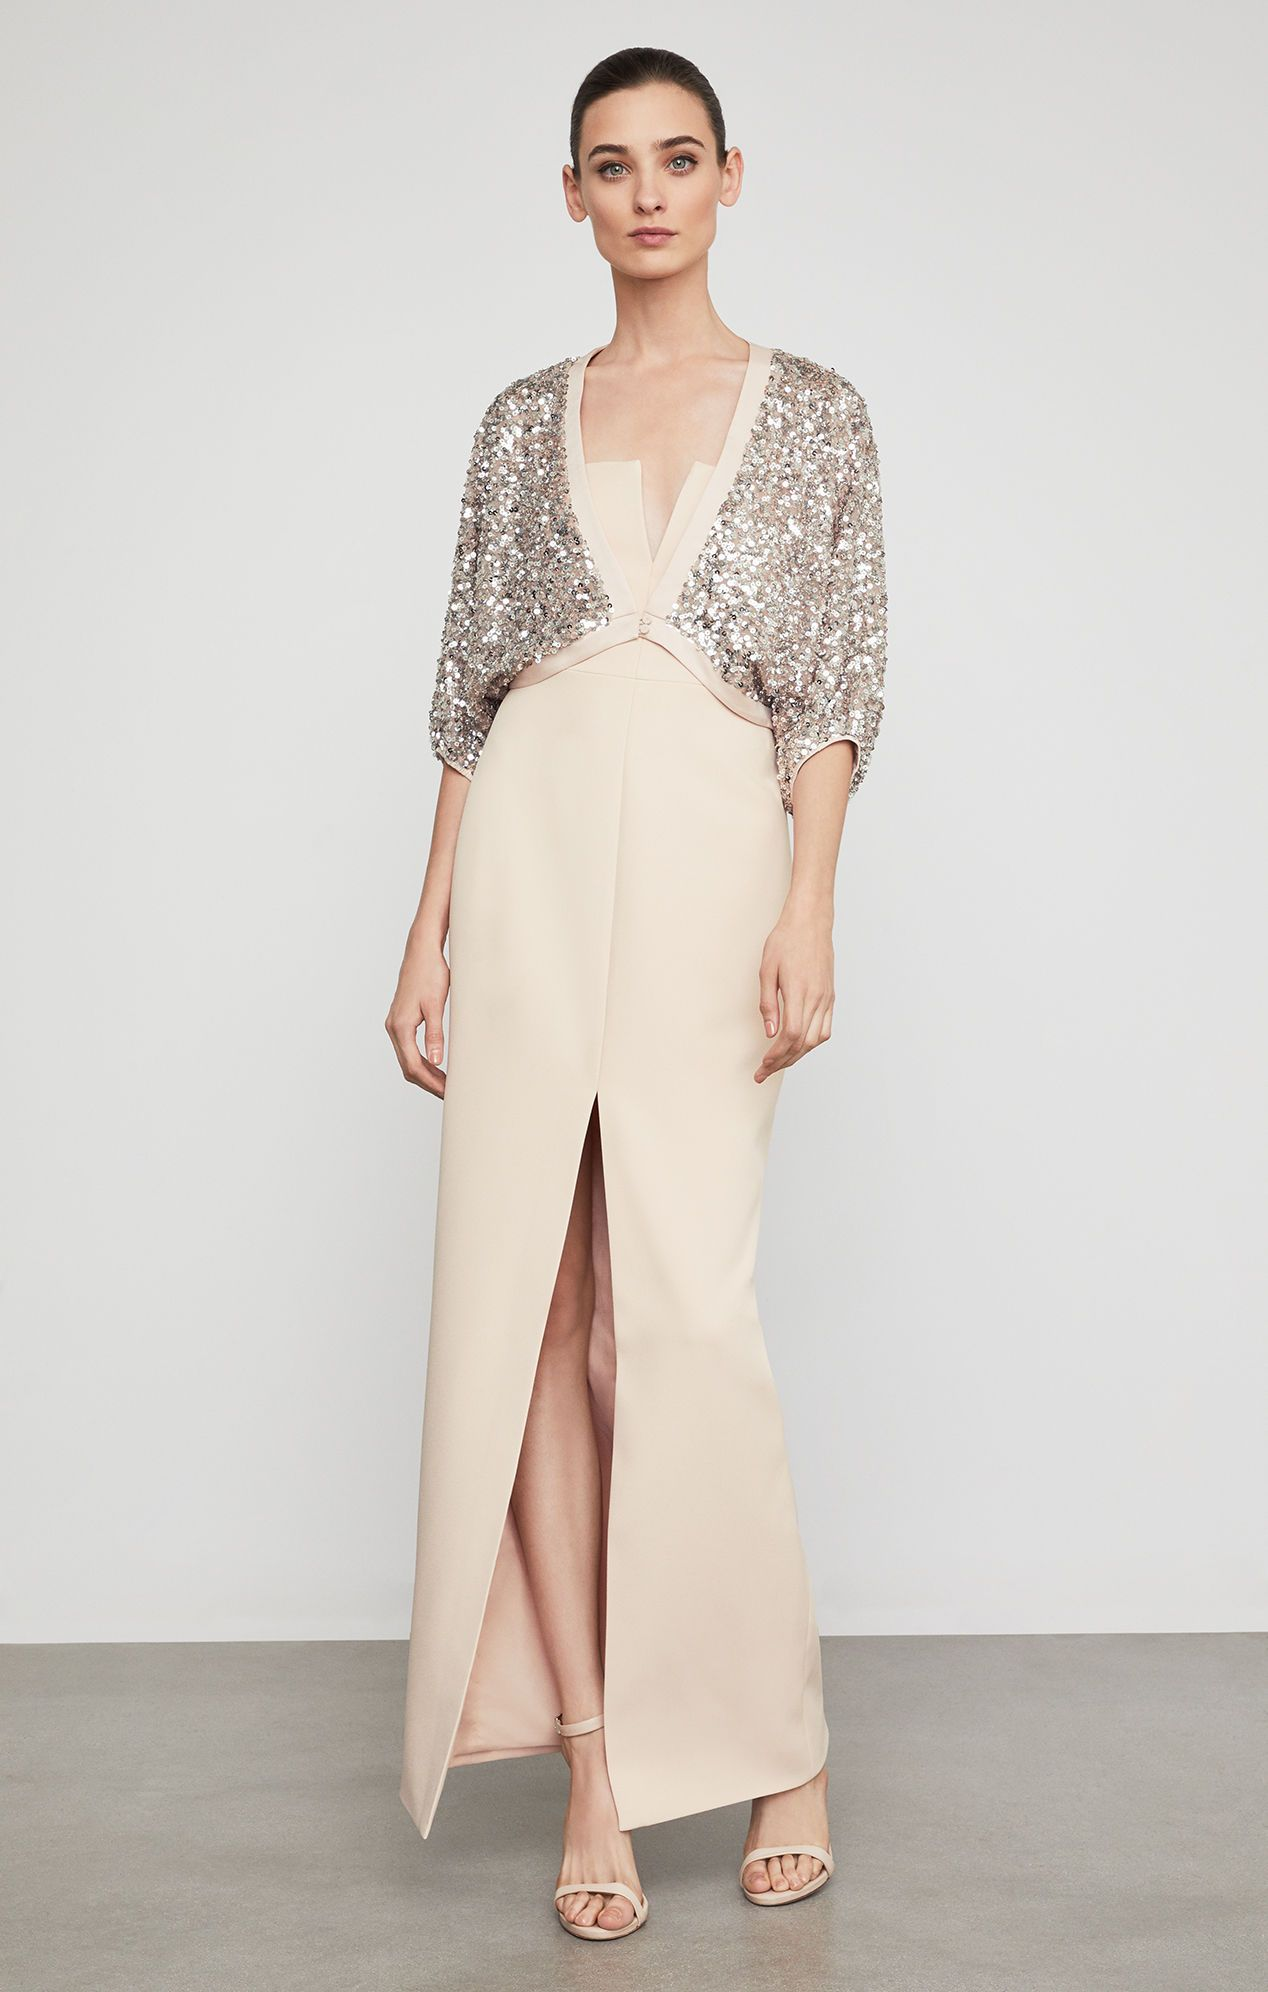 94bbbb98c BCBGMAXAZRIA Sequined Crop Jacket in 2019 | w i s h l i s t ...